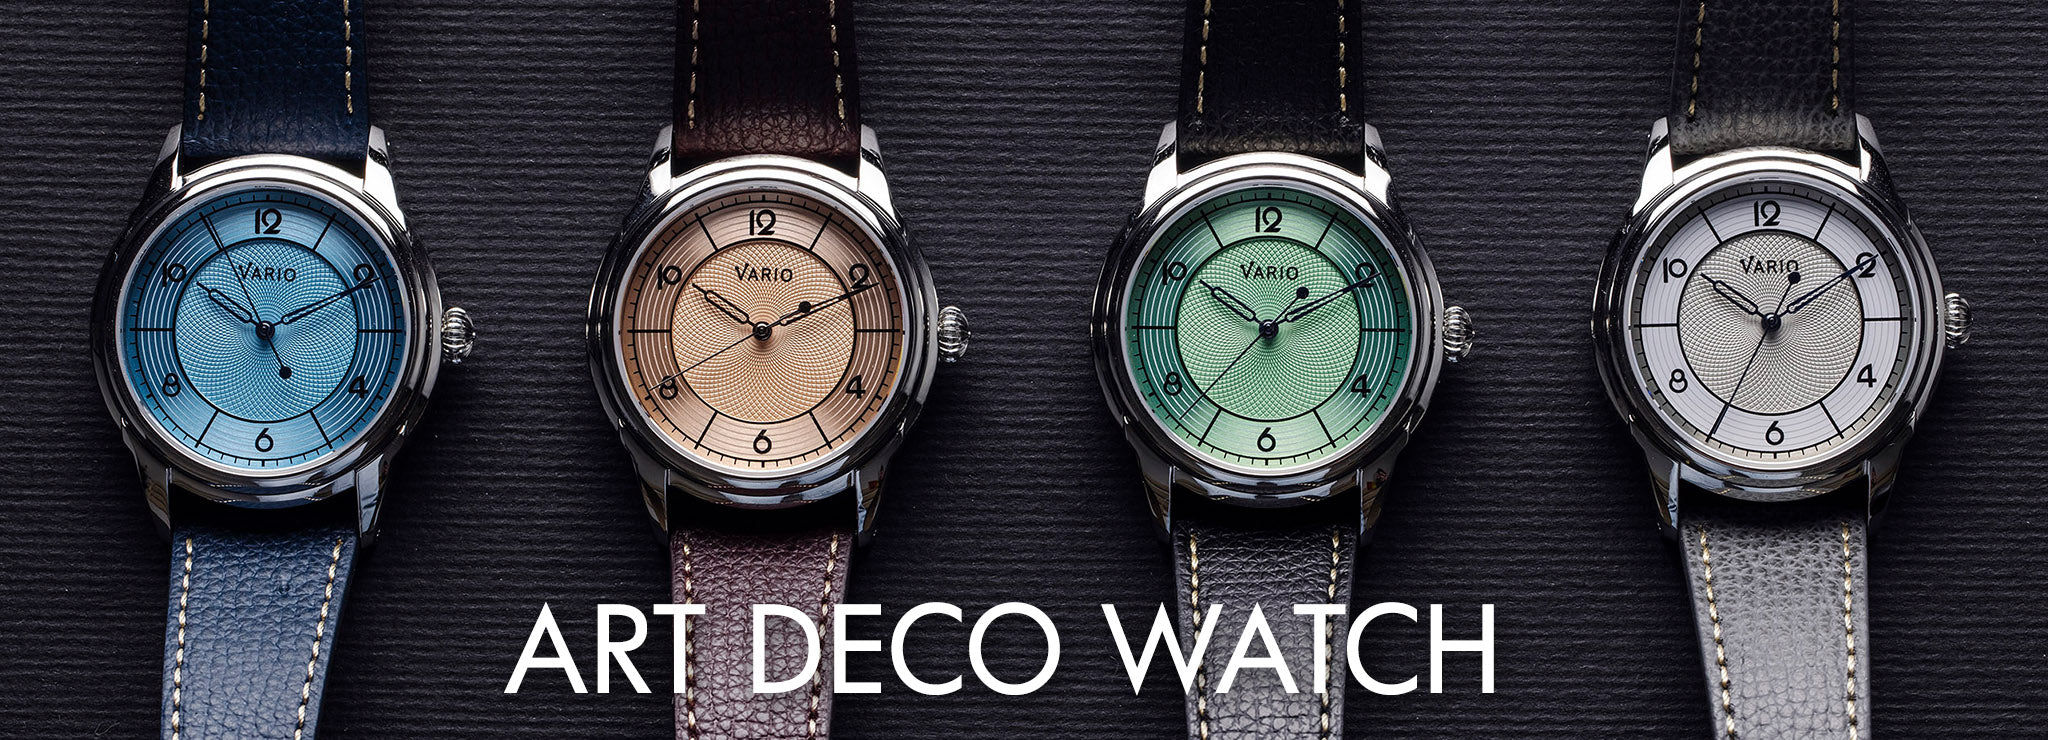 vario art deco empire dress watch